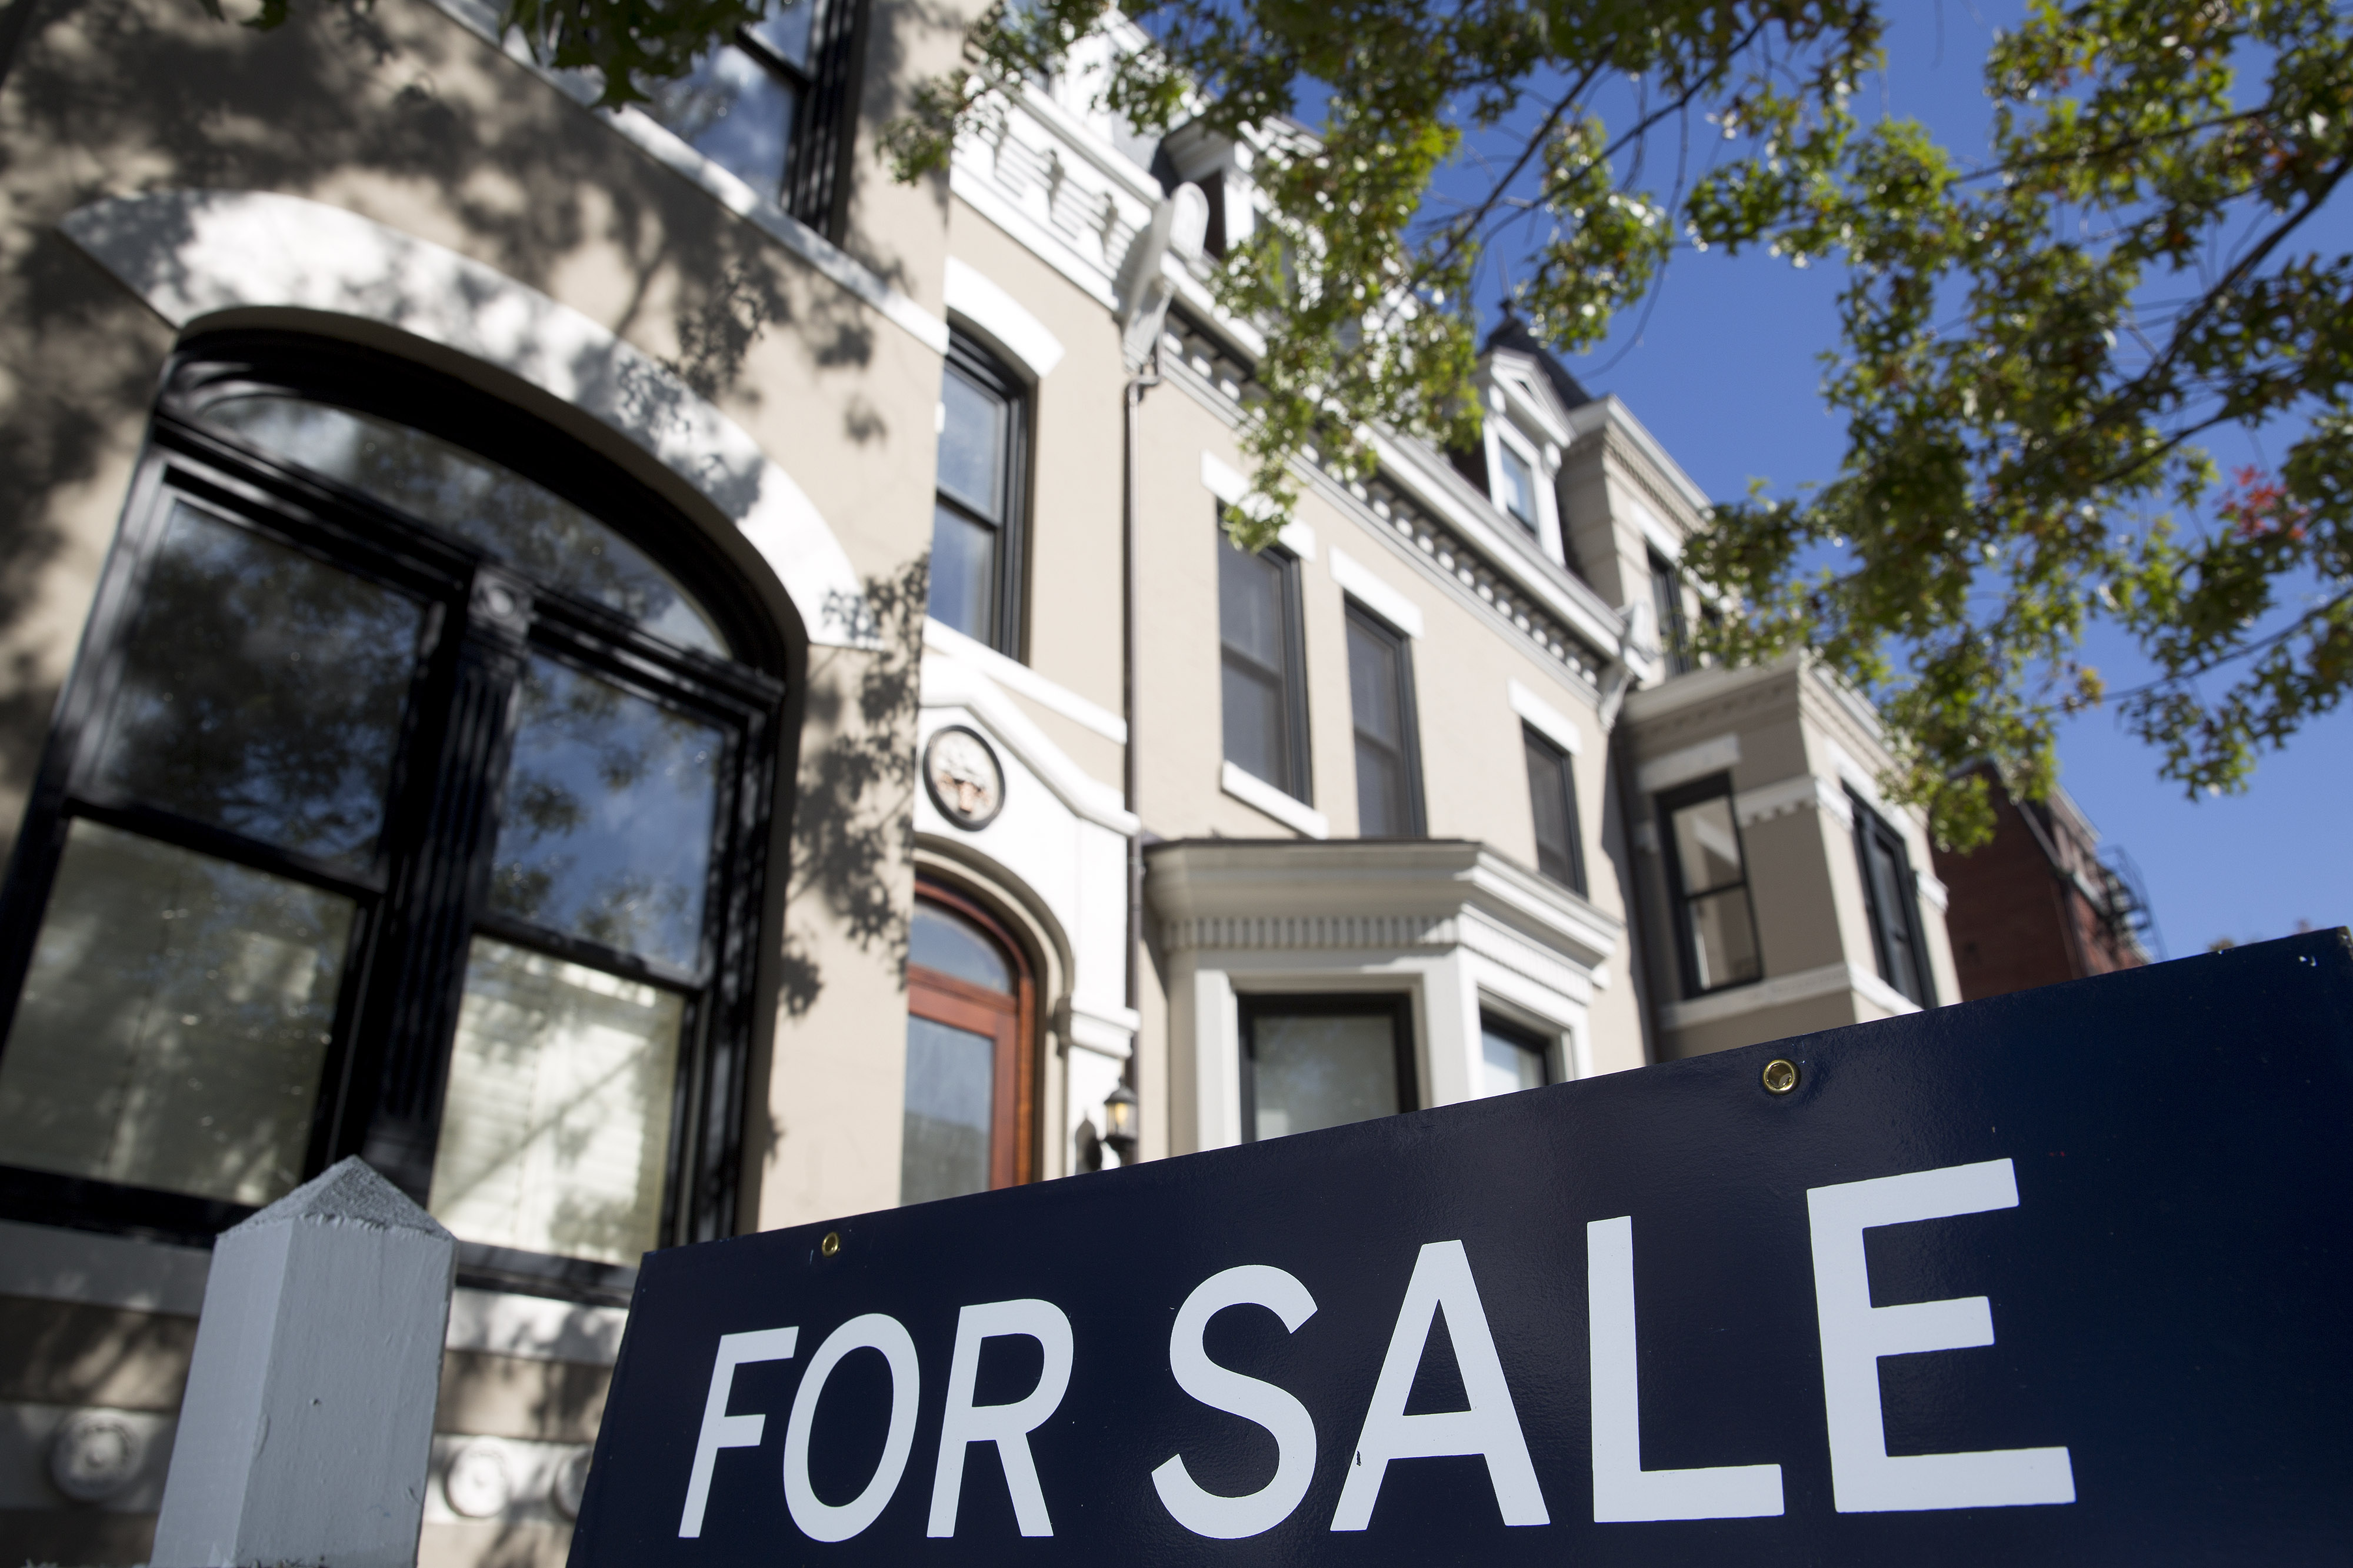 Houses For Sale Ahead Of Existing Homes Sales Figures Release